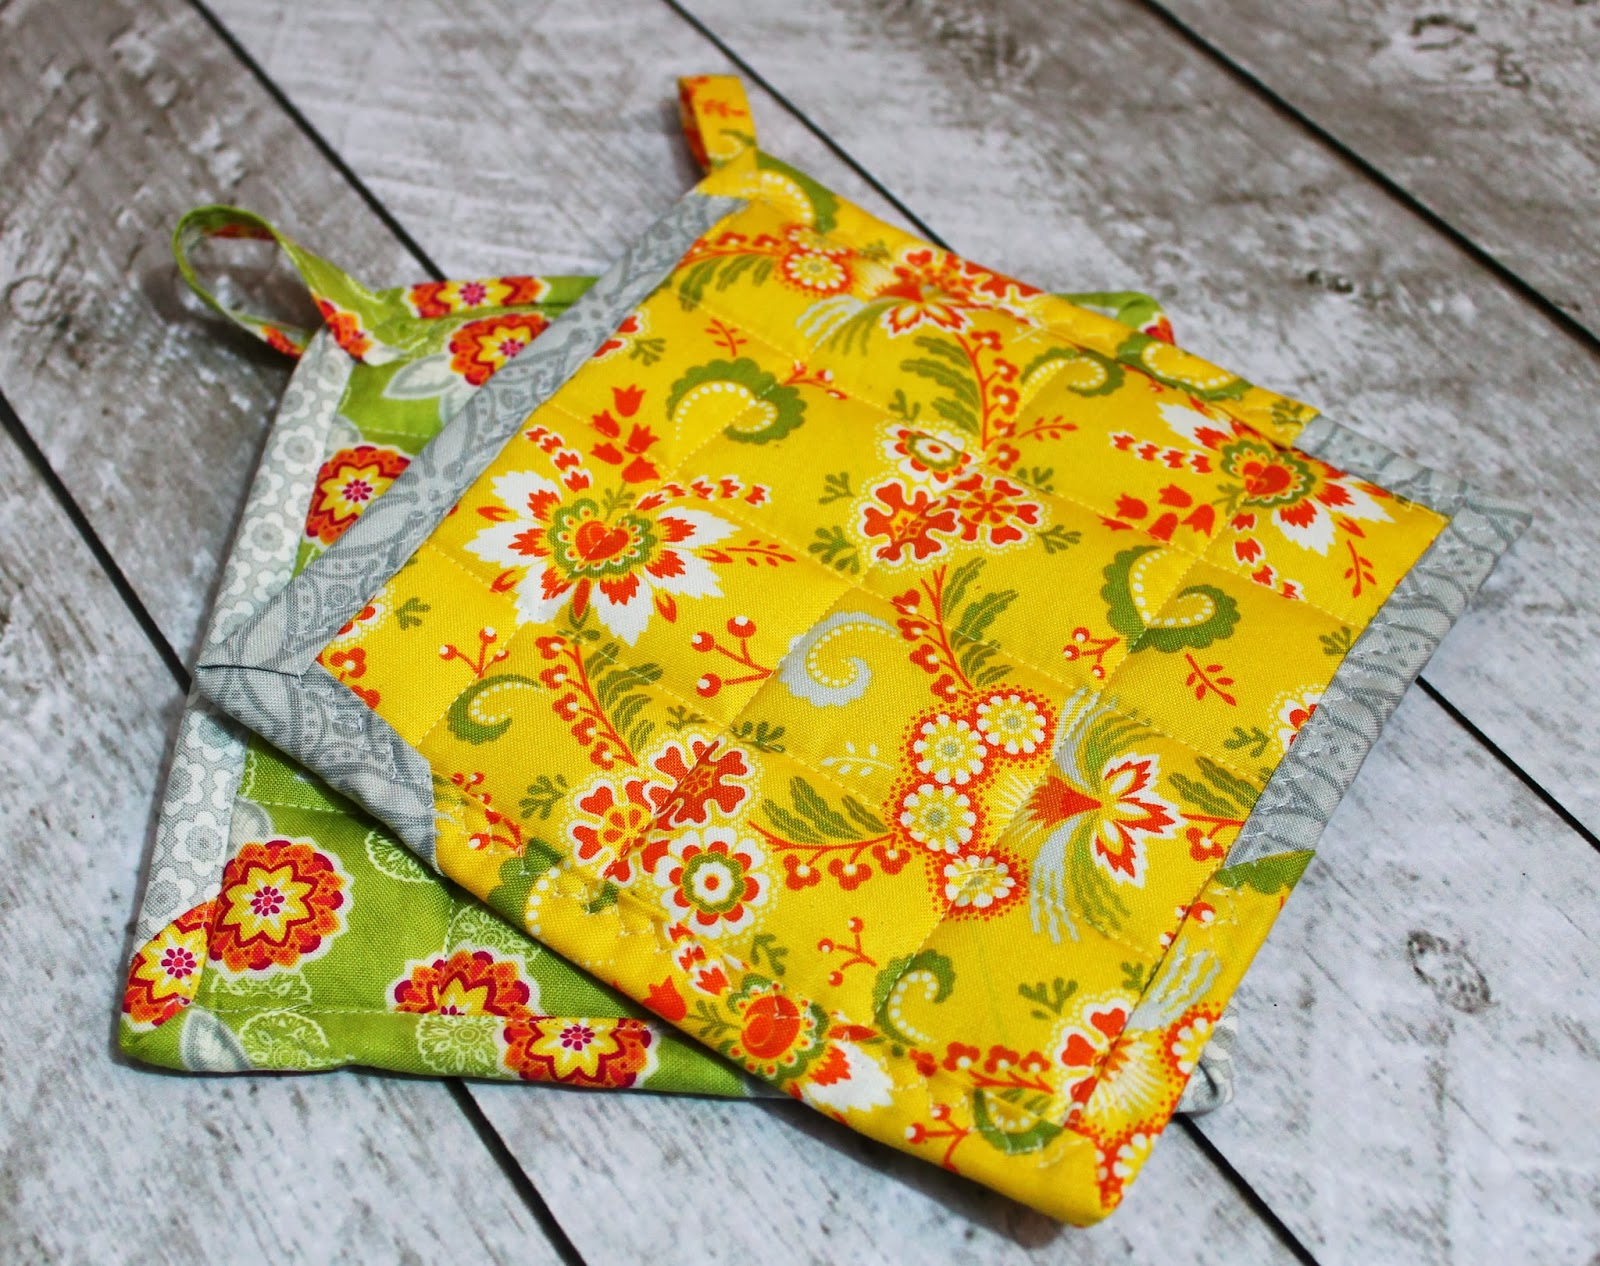 Sew Potholders Pot Holders How To Make Pot Holders The Stitching Scientist